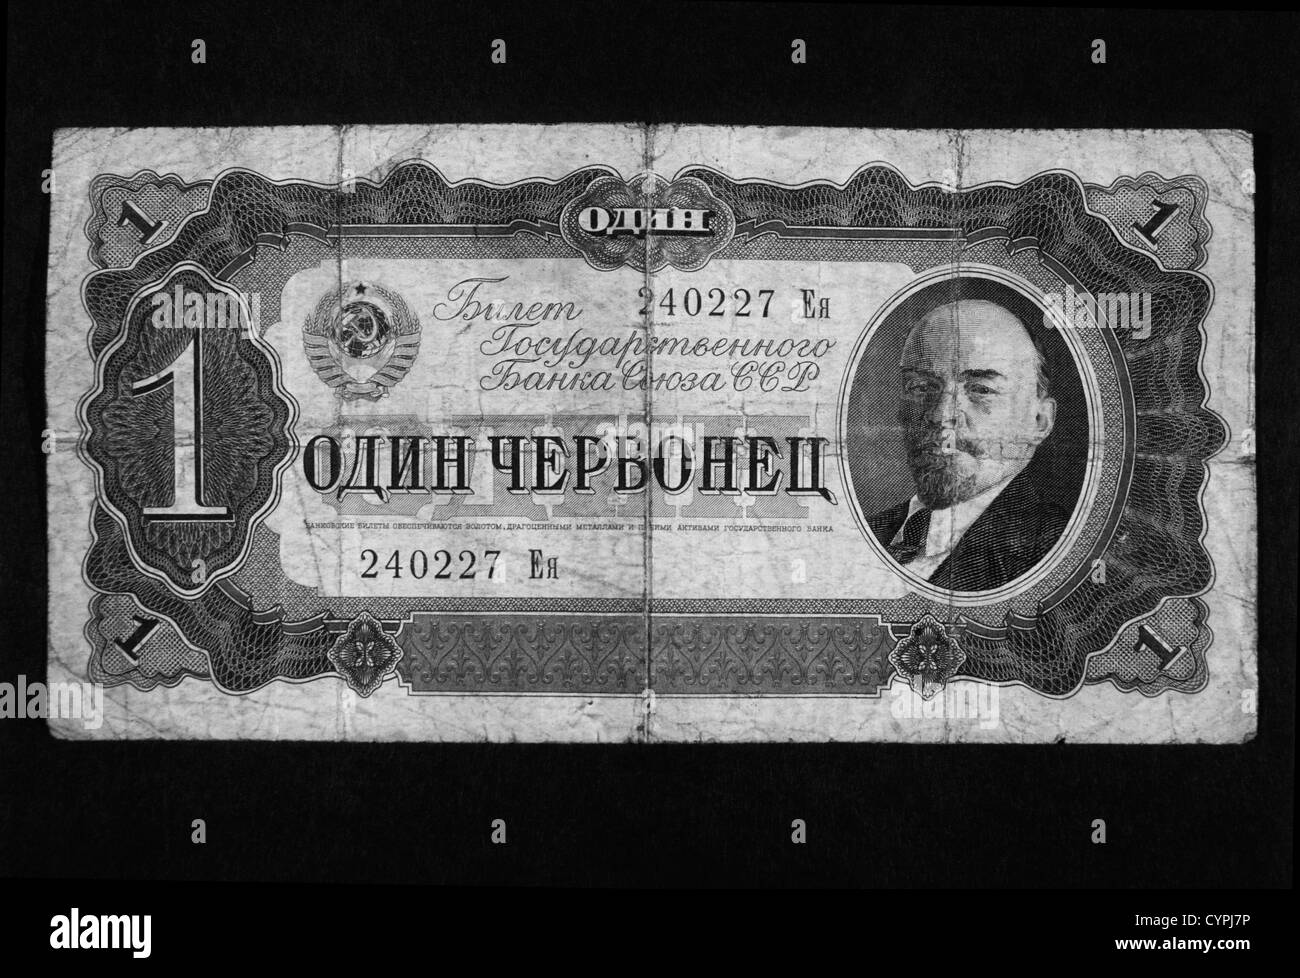 1 Ruble Note with Portrait of Lenin, Soviet Russia, 1937 - Stock Image